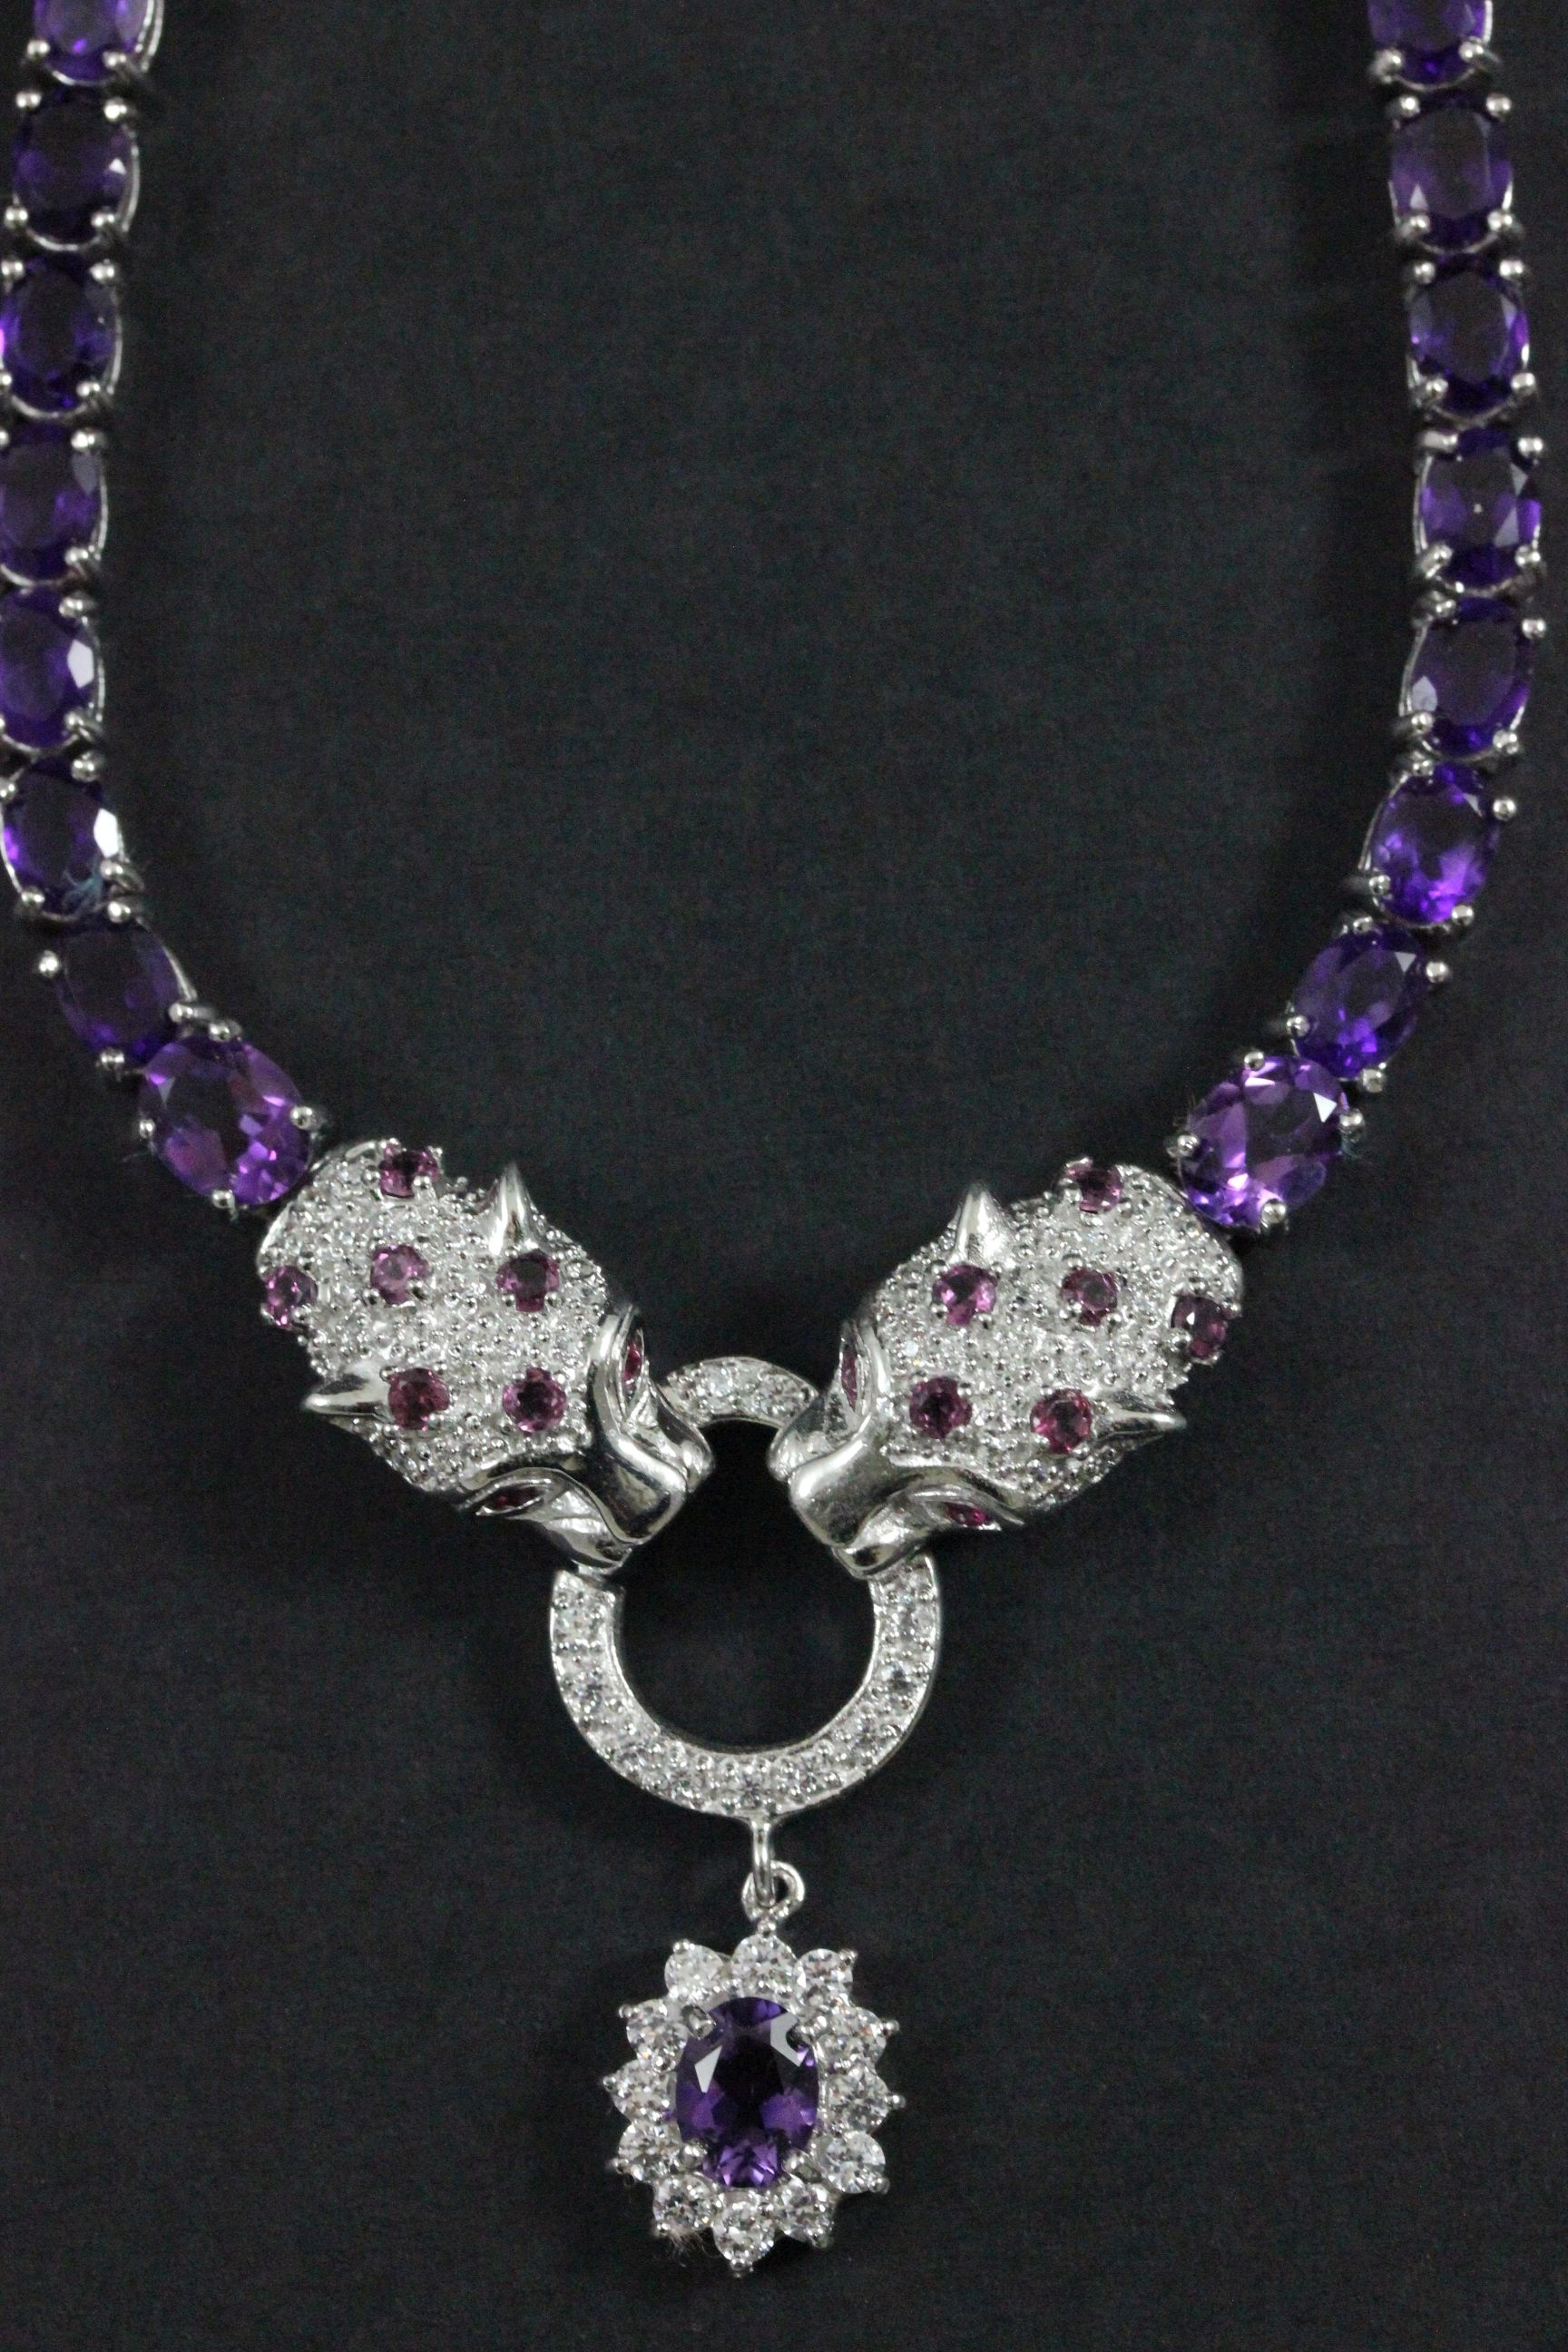 Lot 38 - Silver CZ and Amethyst Cartier style pendant necklace in the form of two panthers